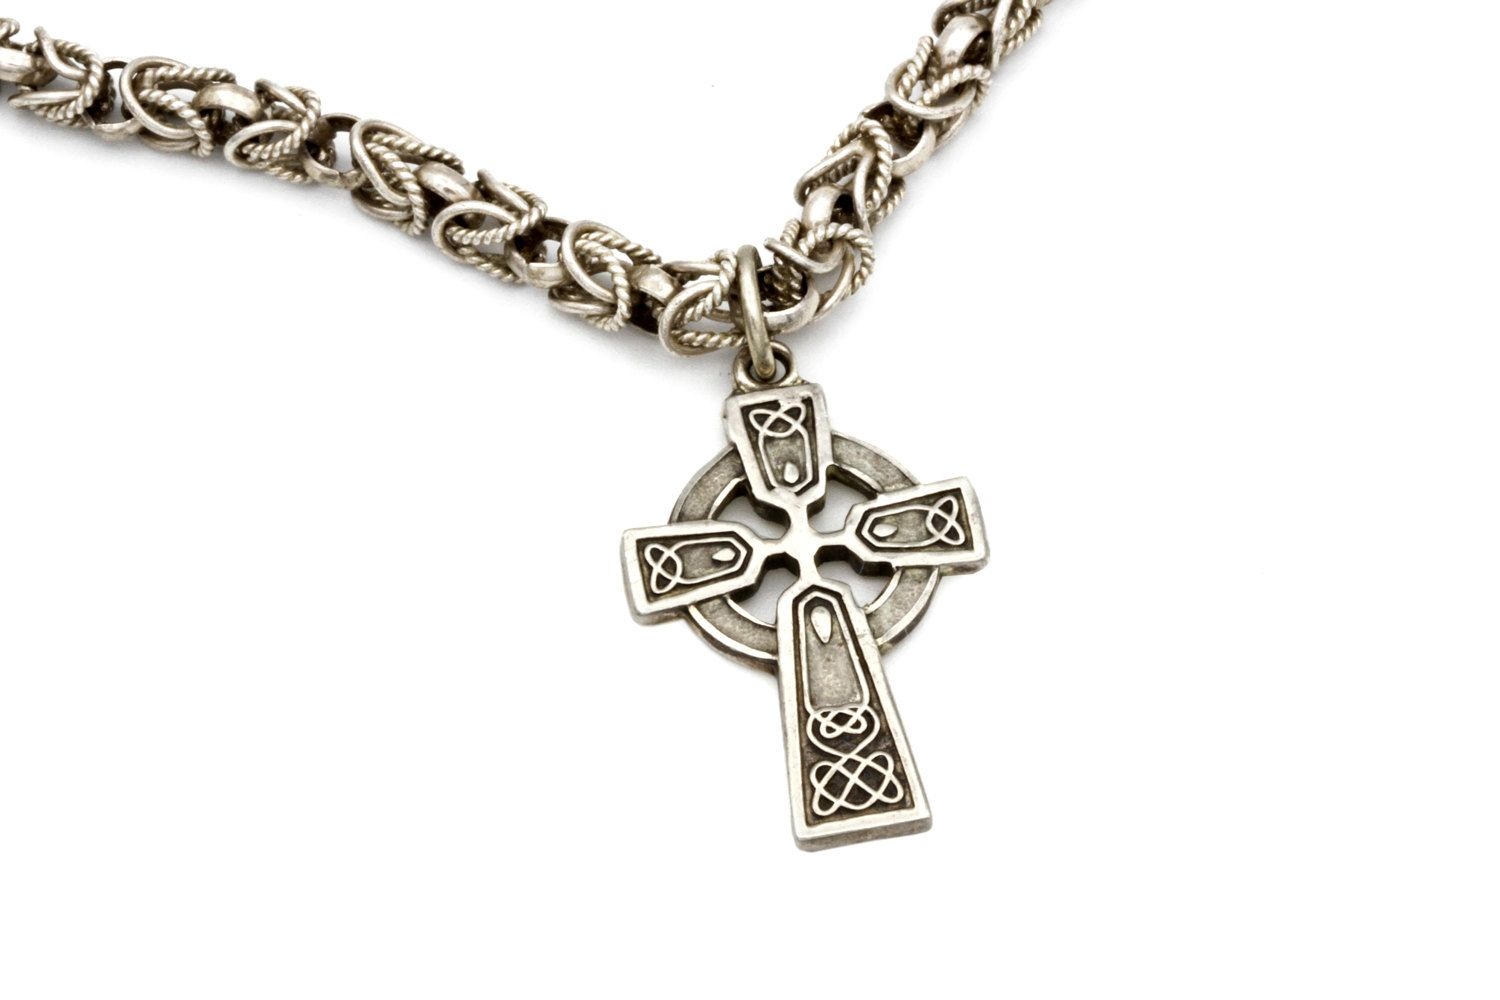 Celtic sun cross necklace celtic irish cross pendant solar wheel celtic sun cross necklace celtic irish cross pendant solar wheel cross pendant byzantine aloadofball Images